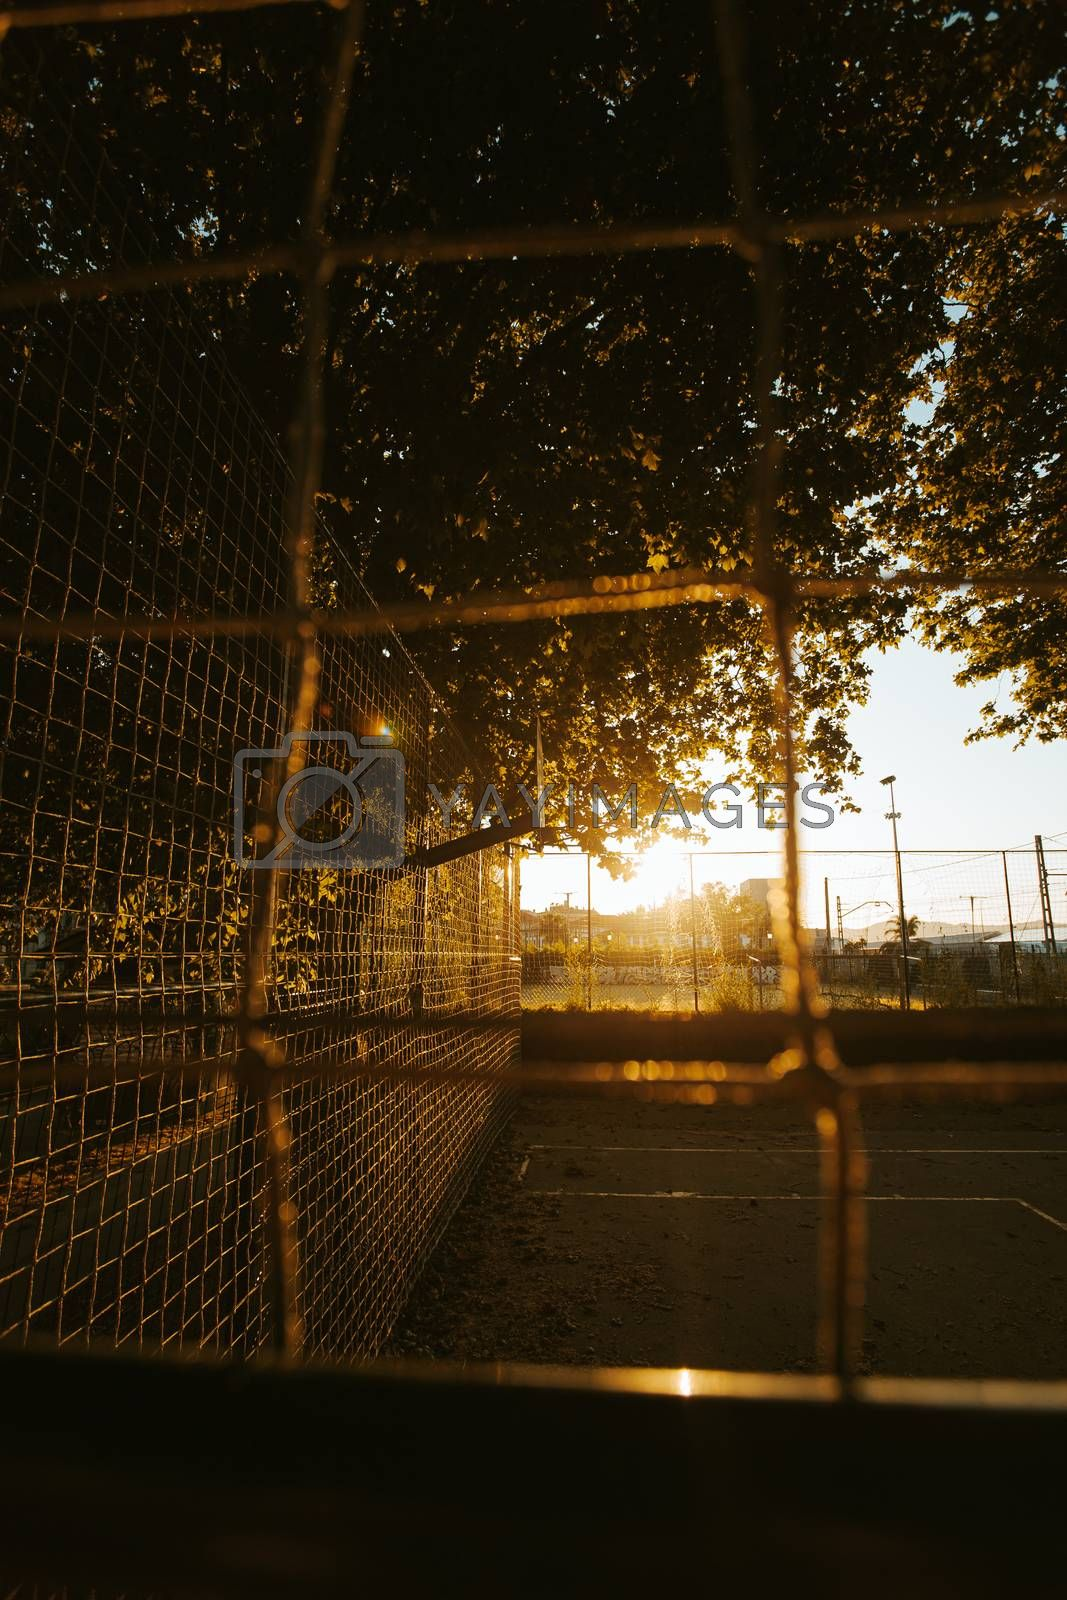 The sun burning the basket on the court in the street during the sunset